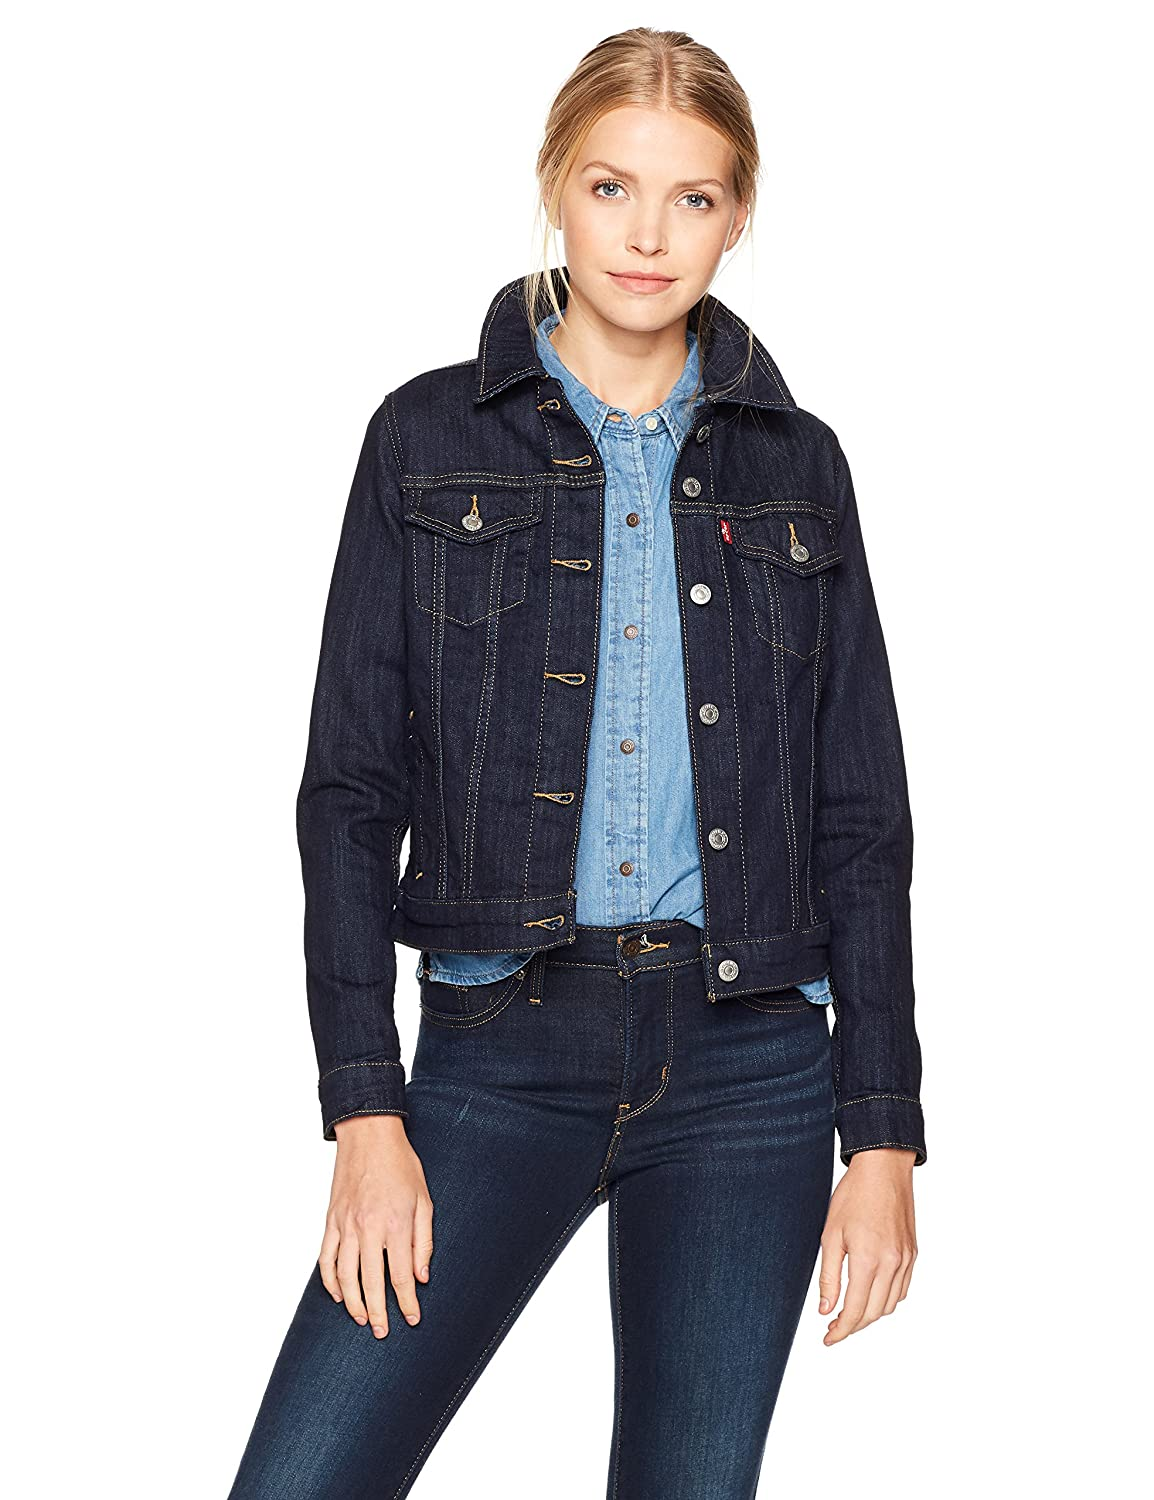 Levi's Women's Original Trucker 29945-0008